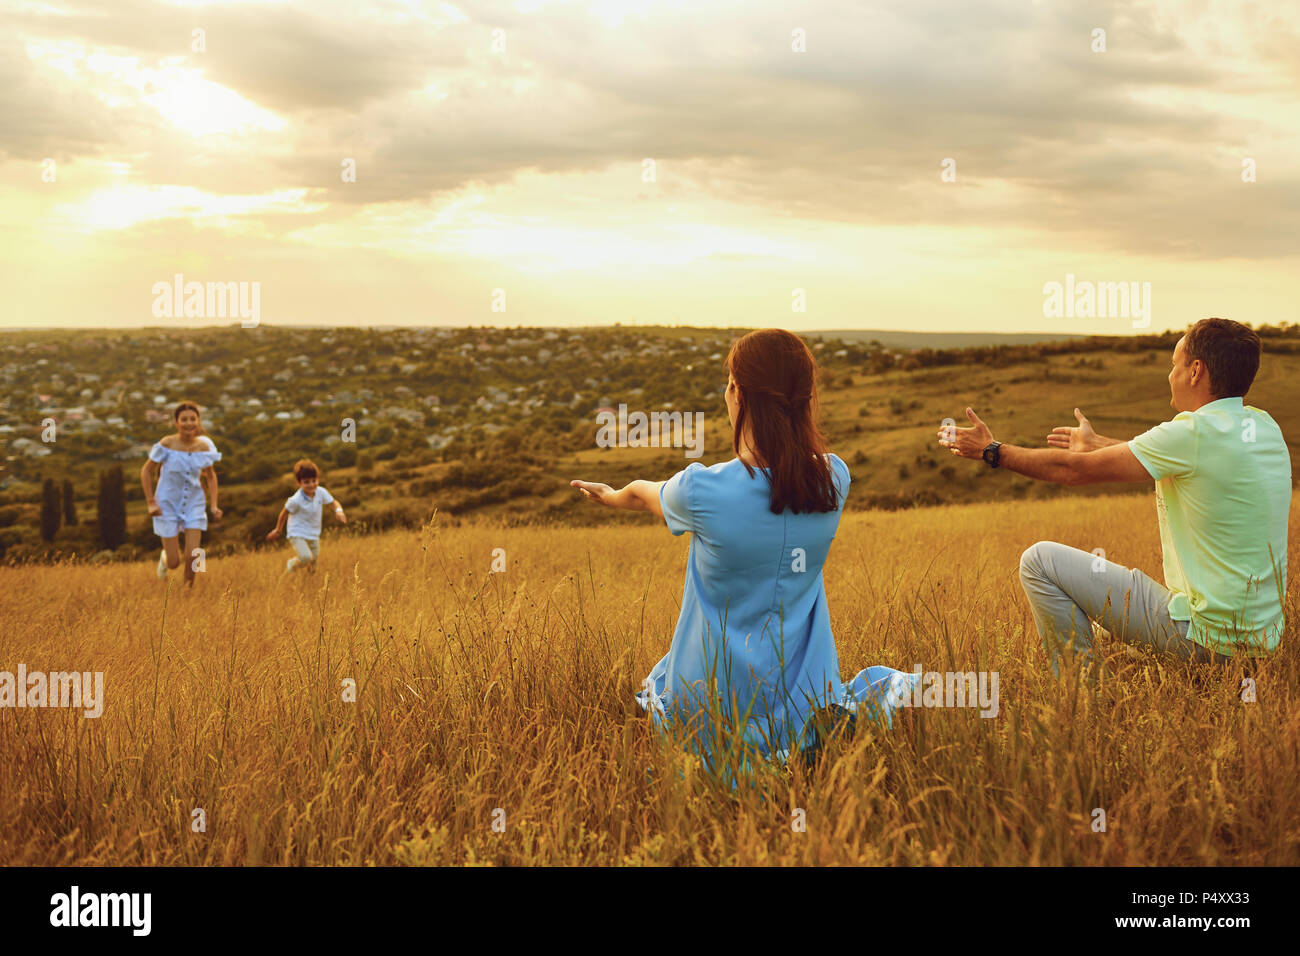 Happy family playing together outdoors.  - Stock Image